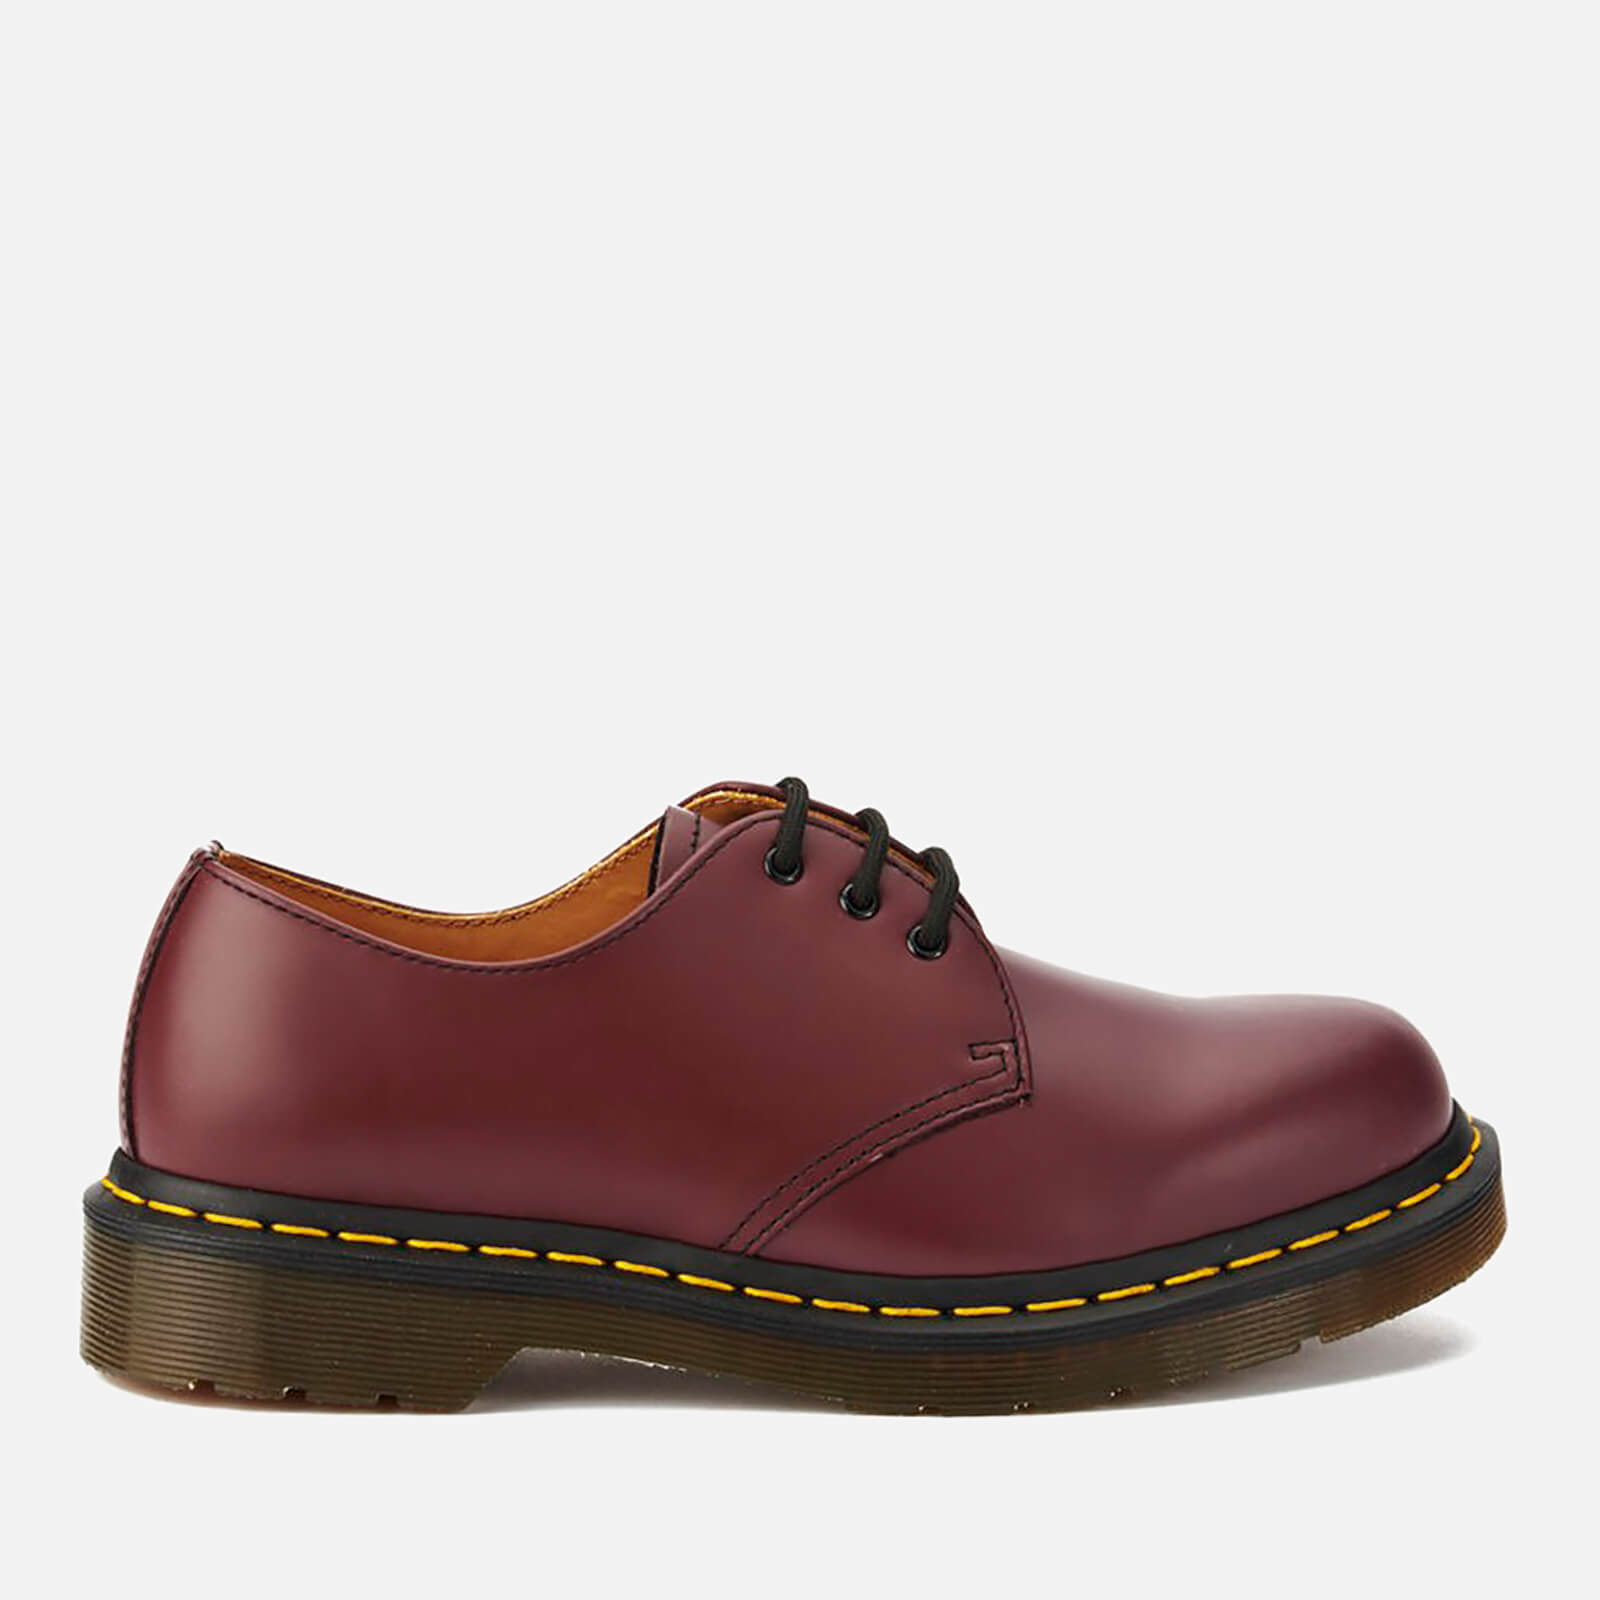 59b4e863dd3 Dr. Martens 1461 Smooth Leather 3-Eye Shoes - Cherry Red